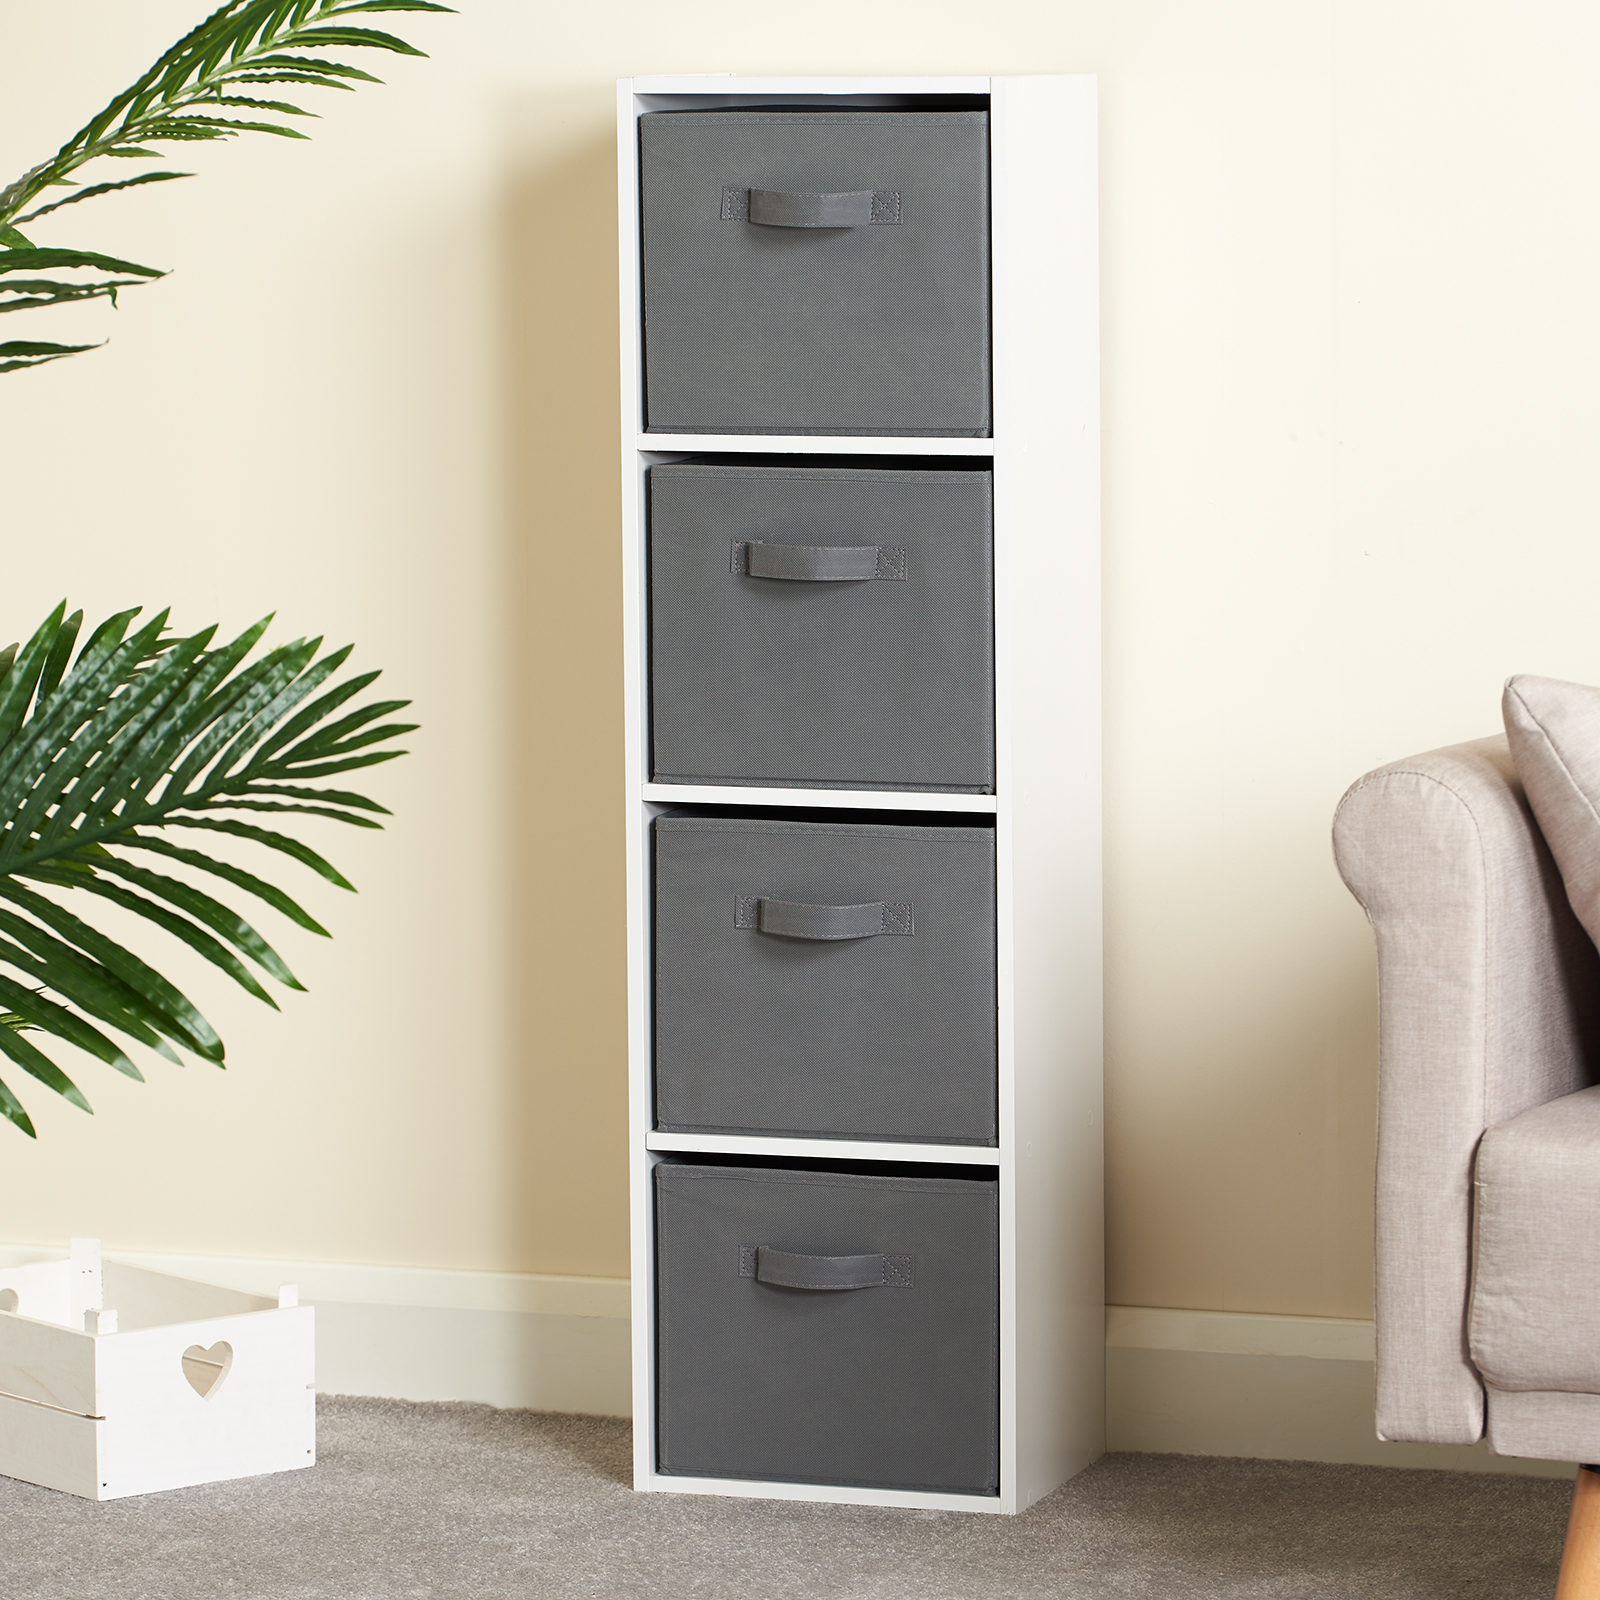 Hartleys-4-Tier-White-Bookcase-Wooden-Display-Shelving-Unit-amp-Fabric-Storage-Box thumbnail 16